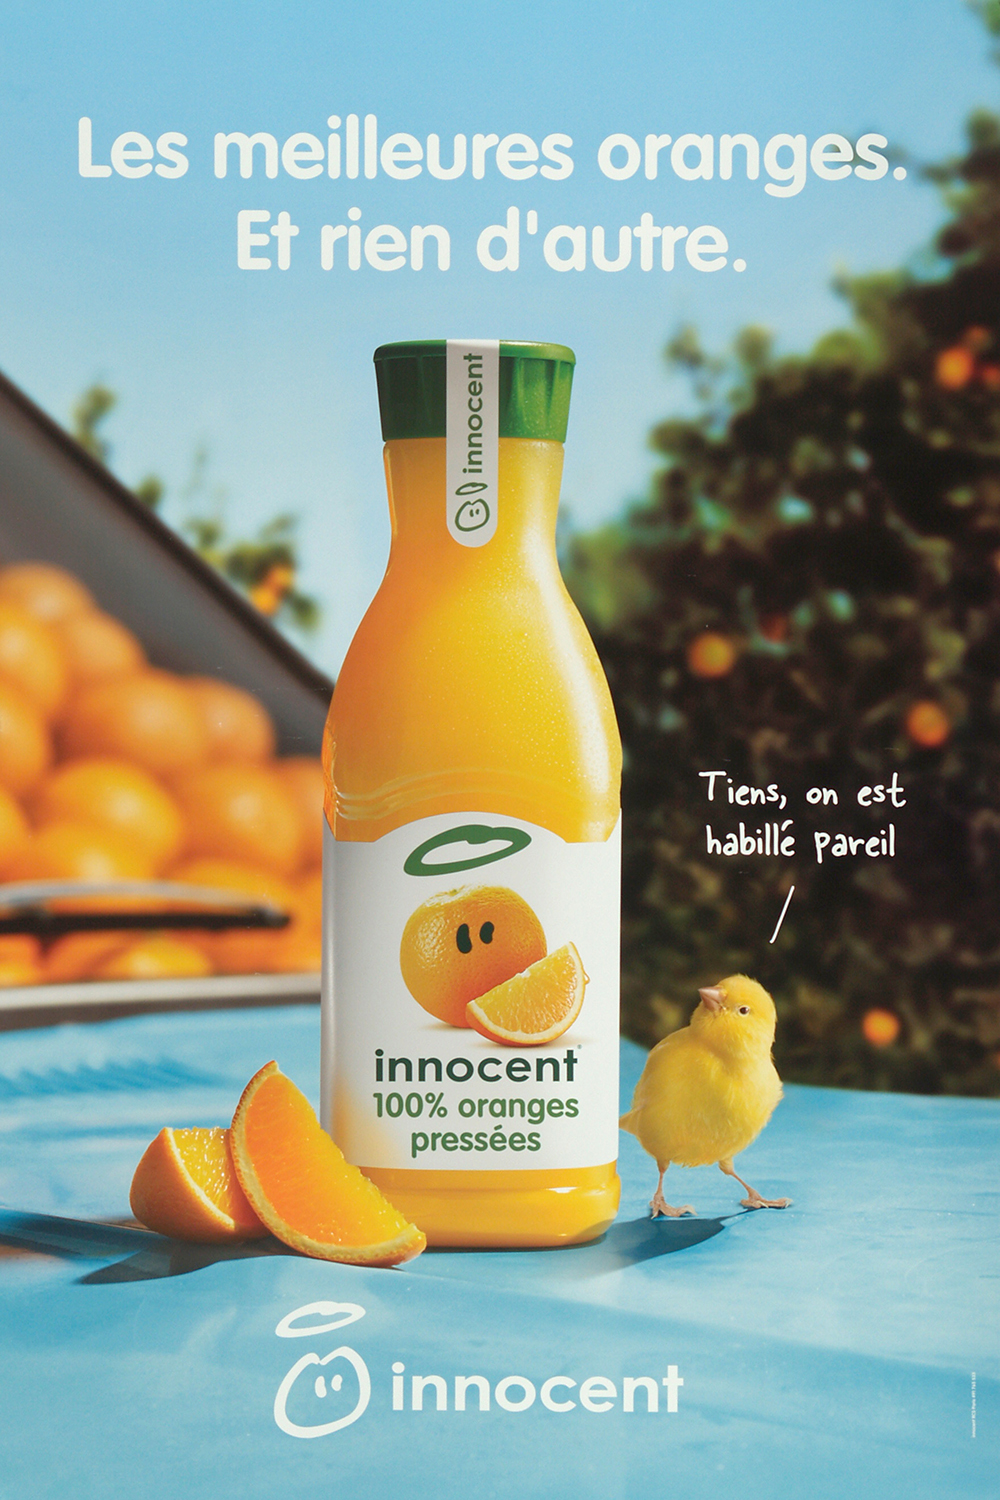 innocent-publicite-marketing-oranges-fruits-2016-agence-shops